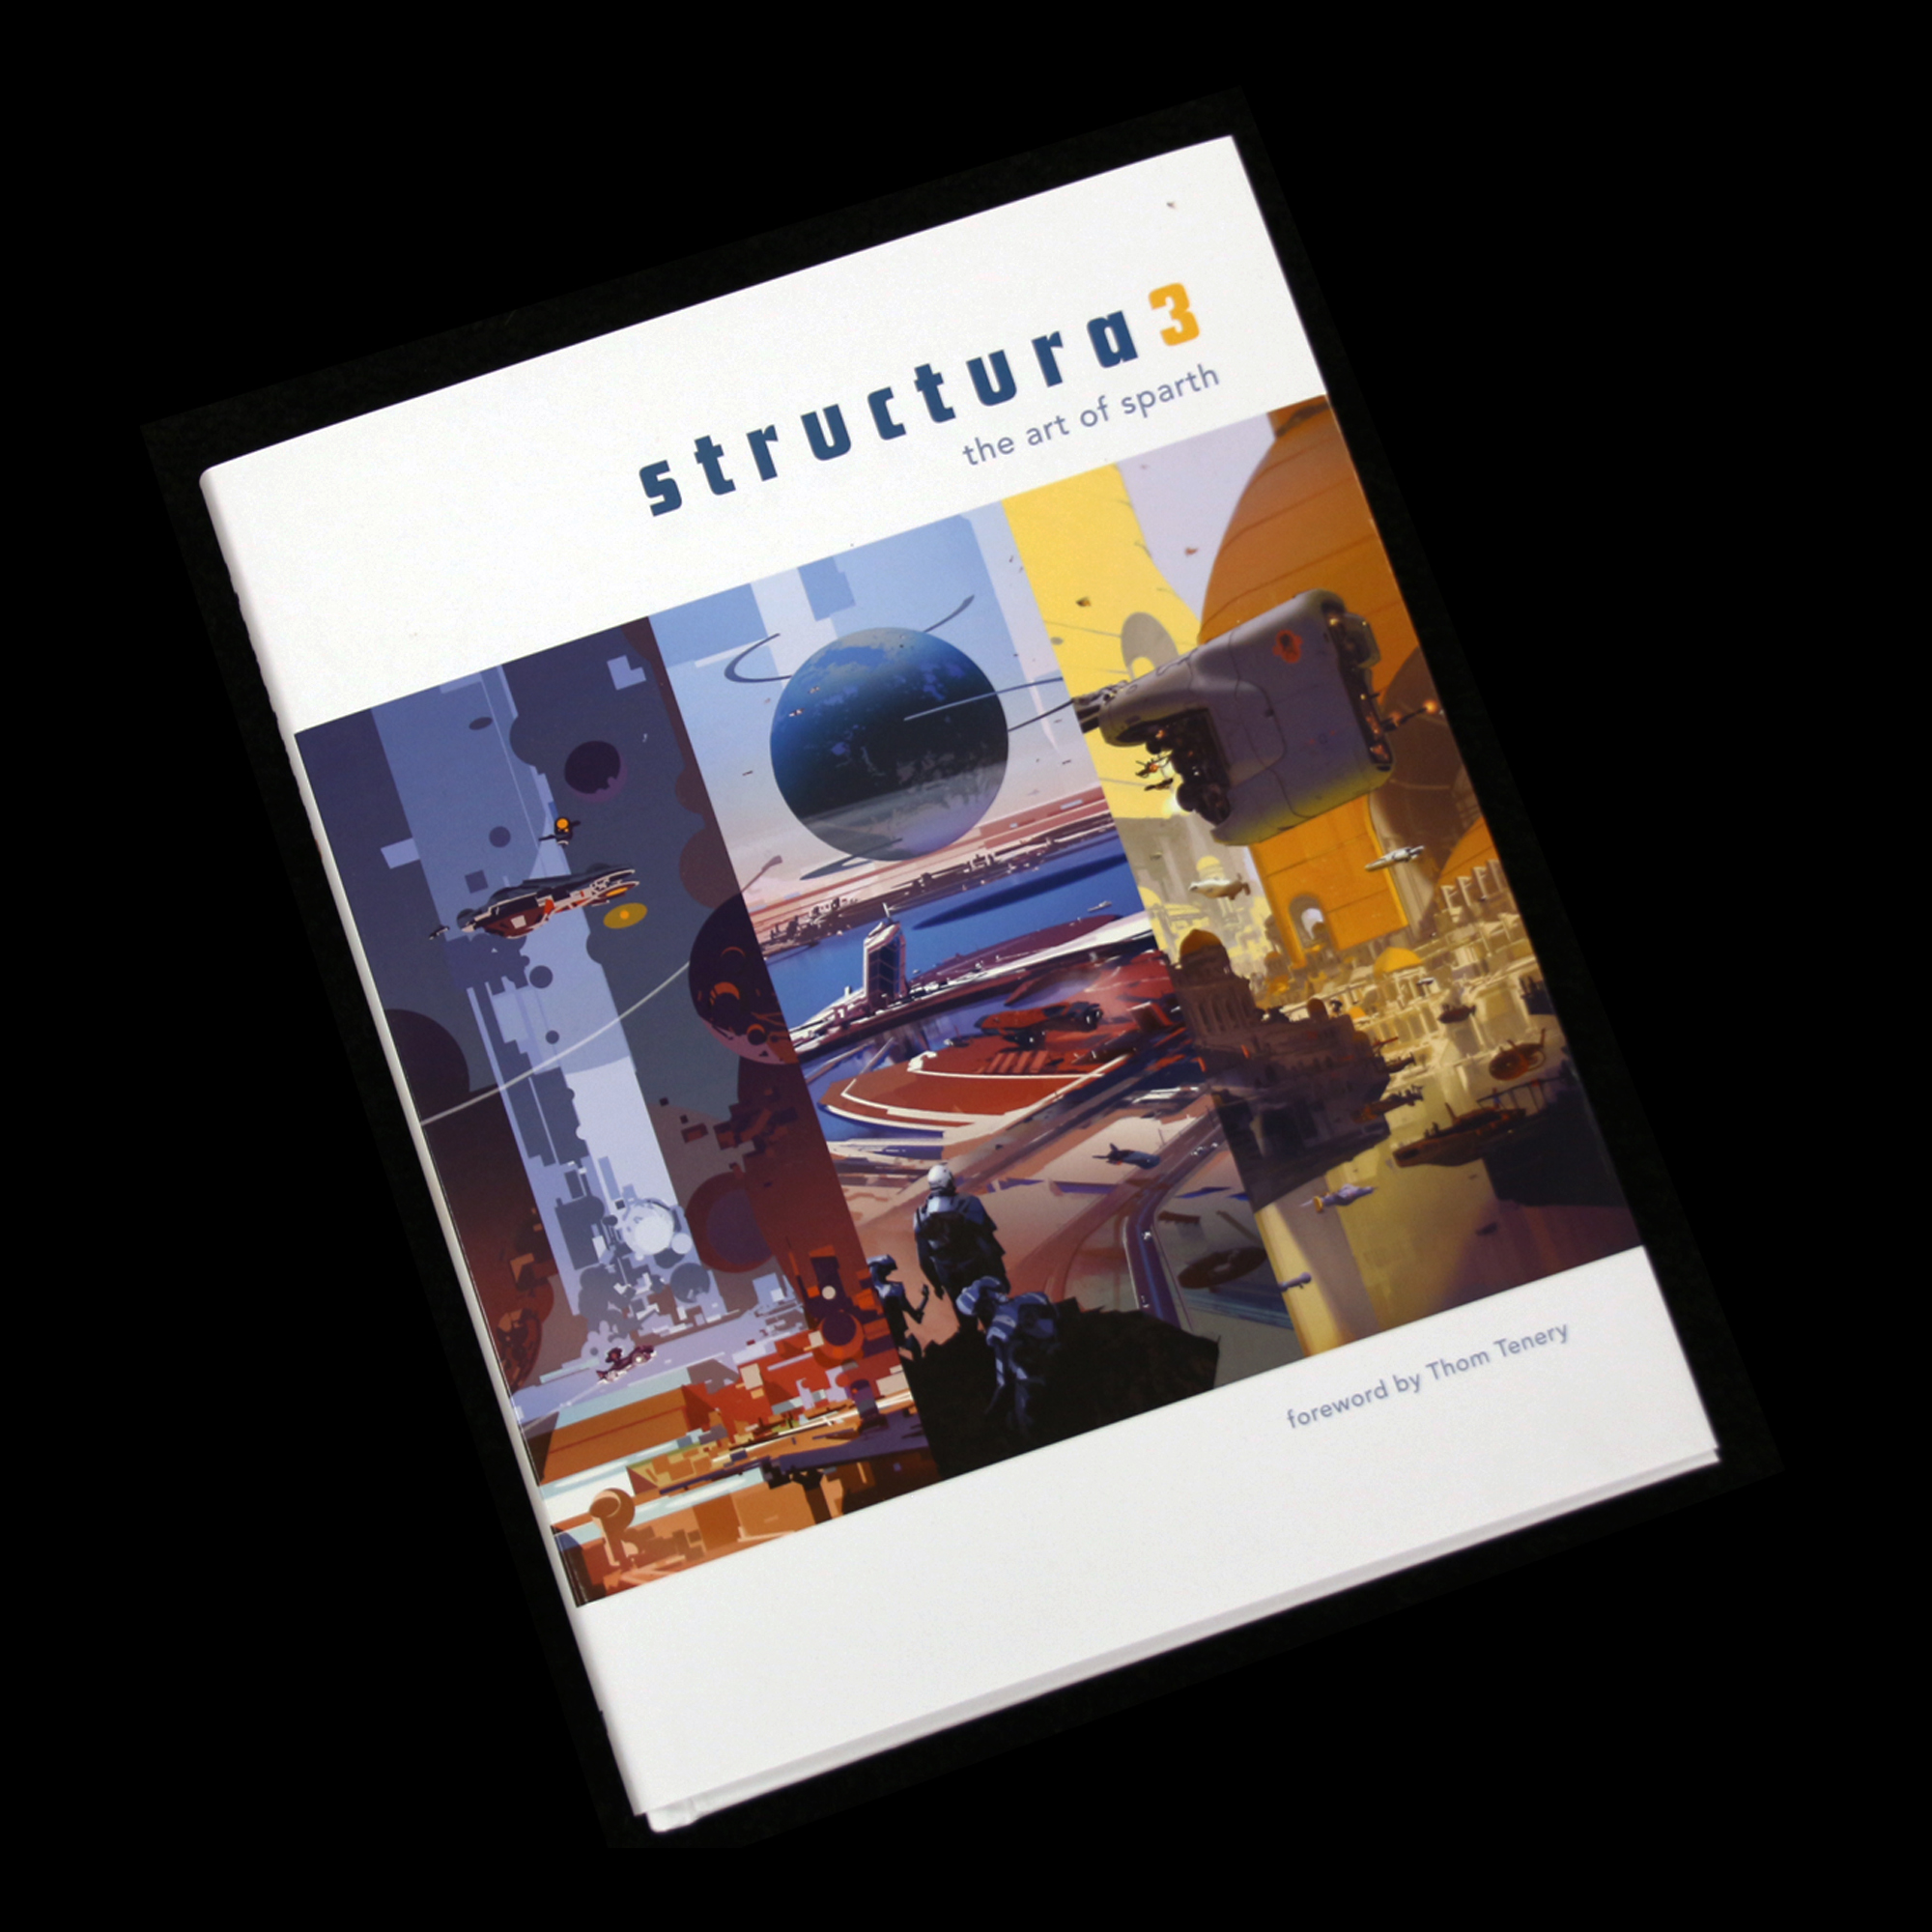 Structura The Art of Sparth